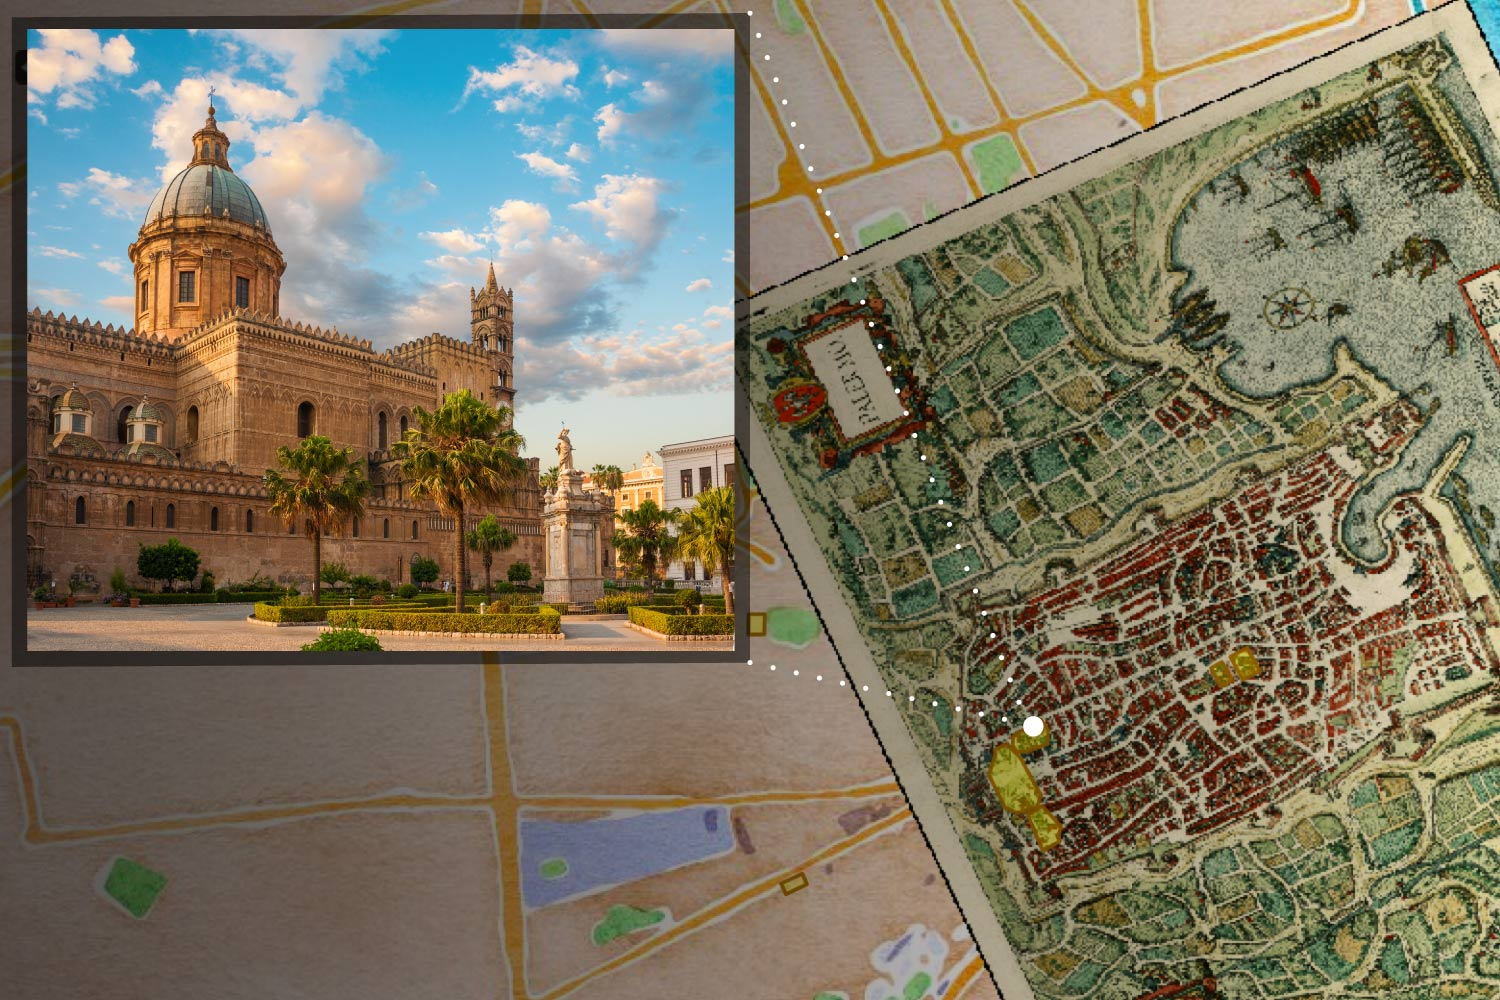 This rendering of Neatline elements shows an image of the Cathedral of Palermo and its location on the medieval map of the city. Lisa Reilly's architectural  project has a full description of the cathedral that appears when it is clicked on the map.